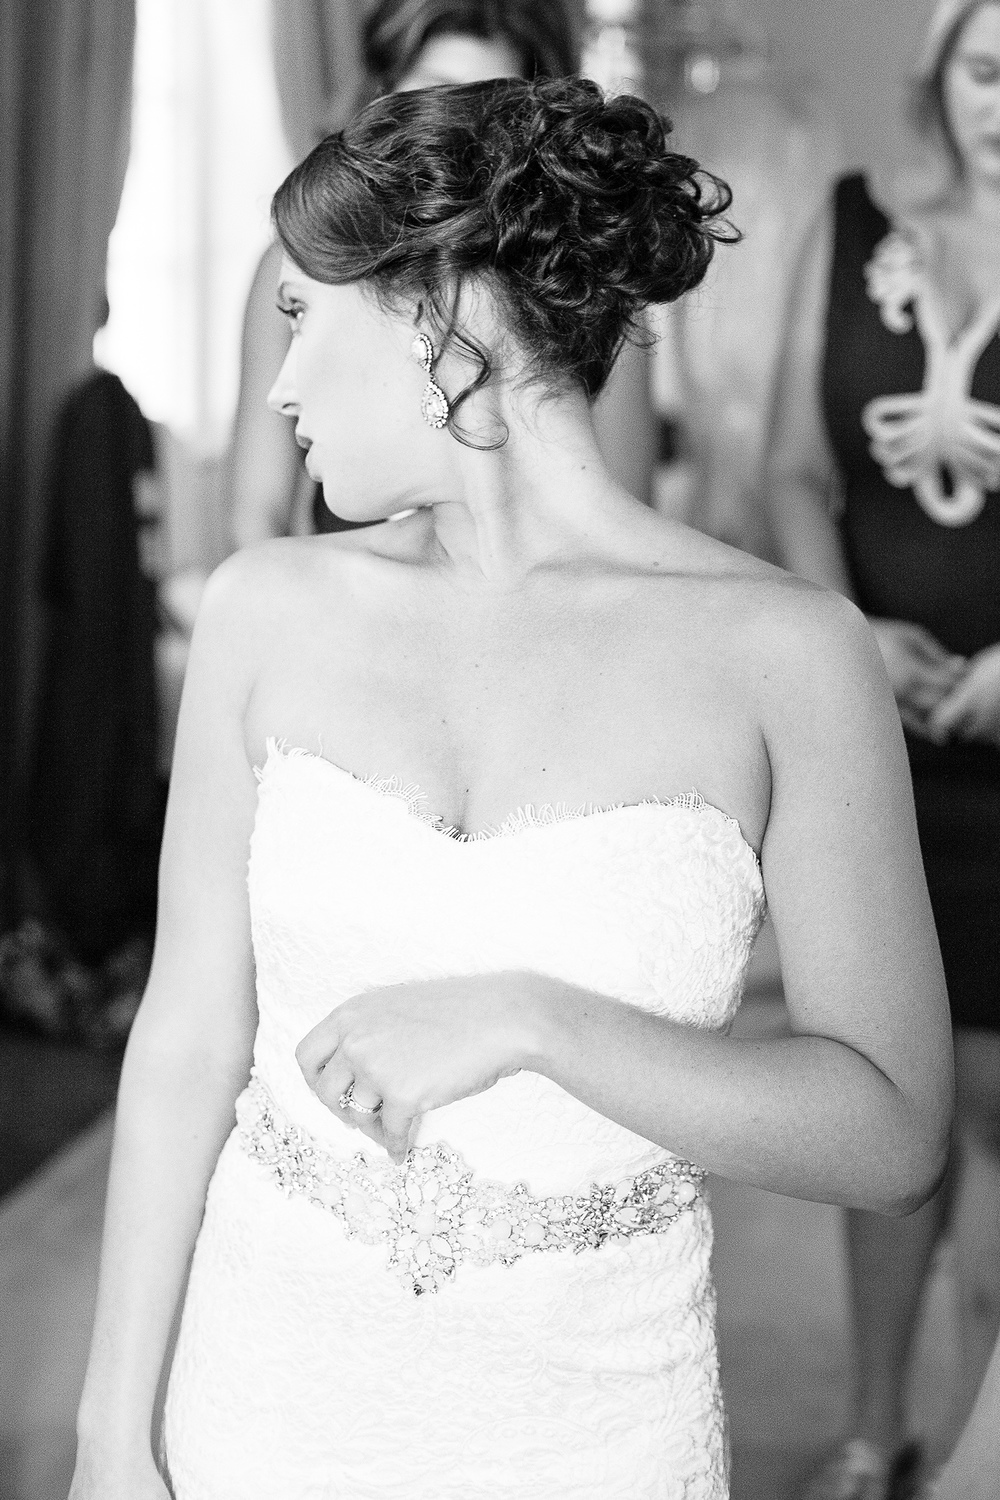 Classy Black & White Bridal Portrait at The Carolina Inn